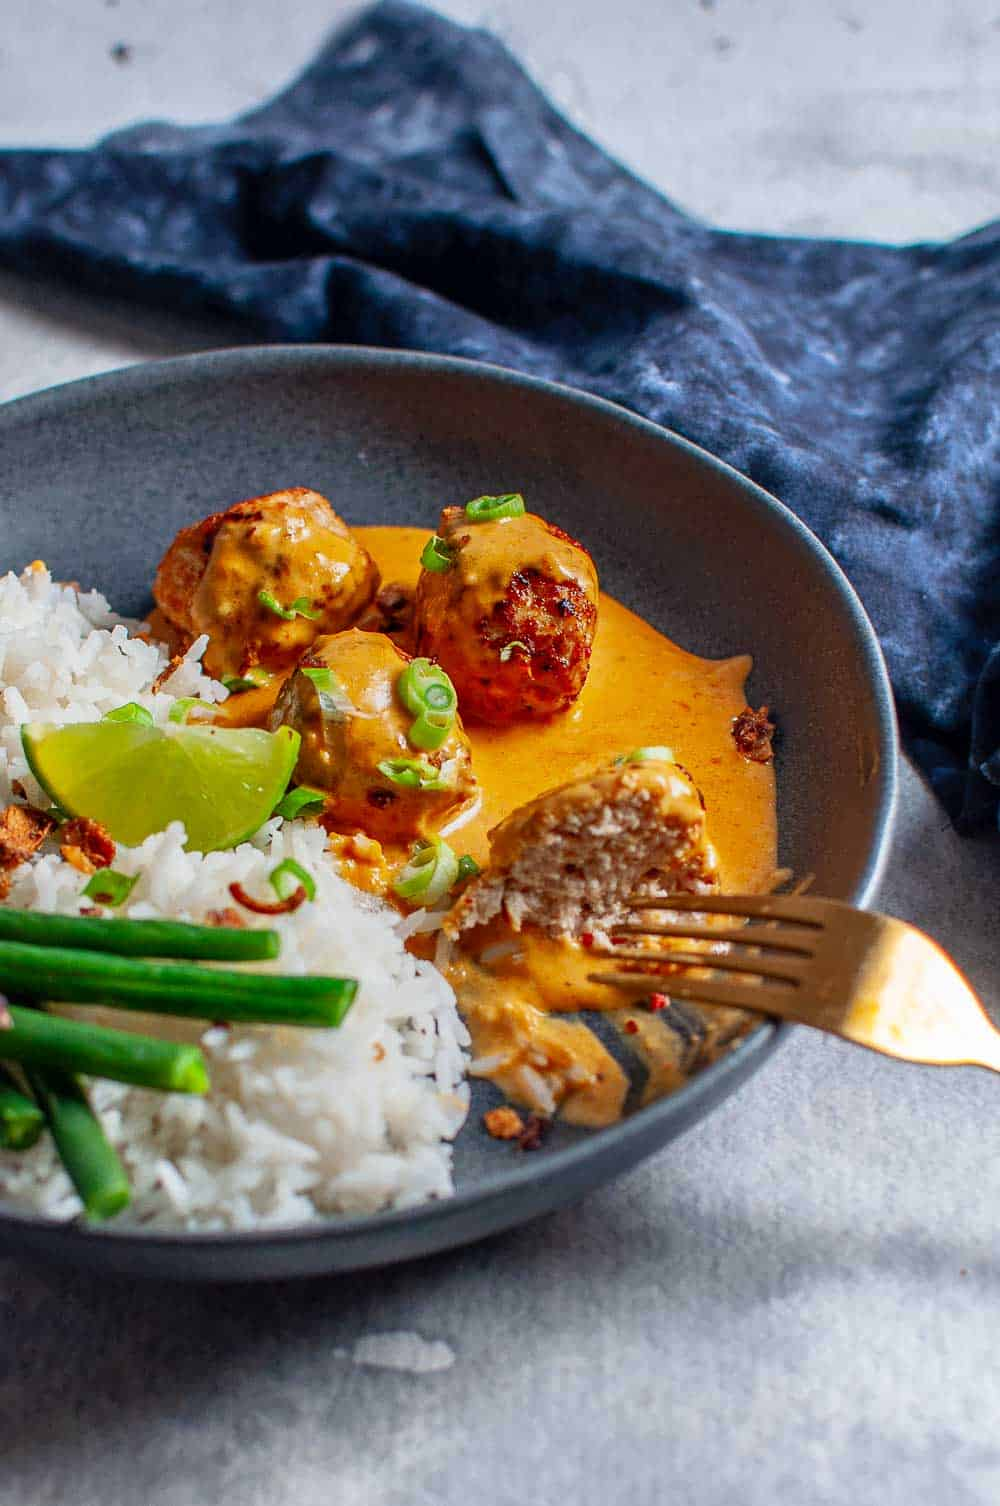 Thai Chicken Meatballs With Peanut Sauce and rice being eaten with a fork